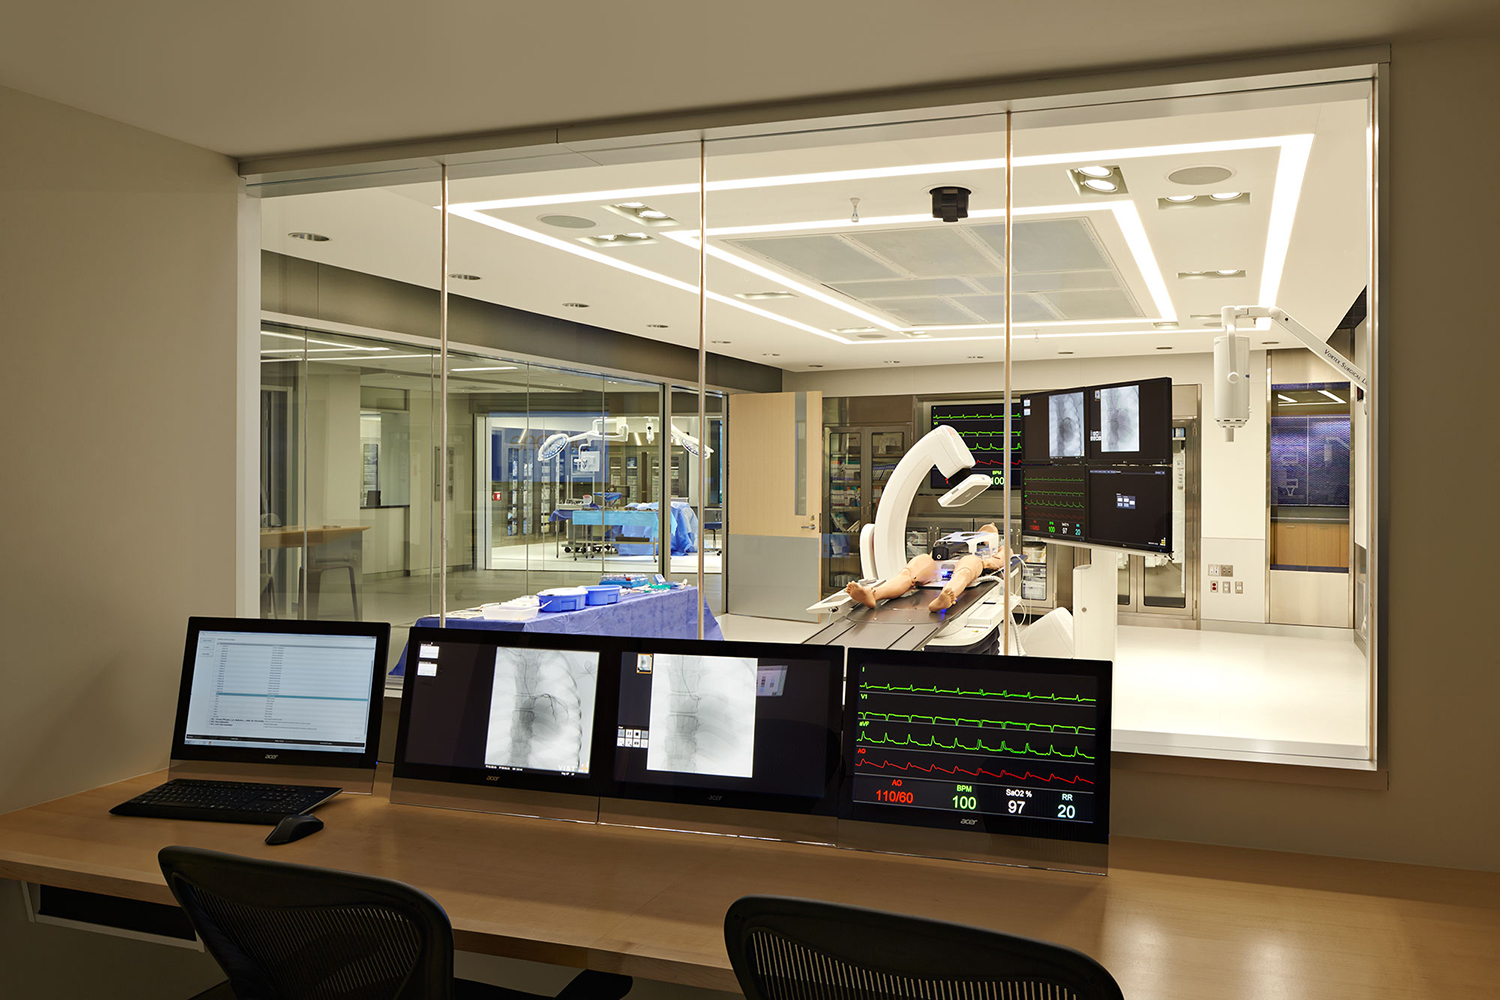 Mdco medical simulation center bsa design awards for Interior design simulator free